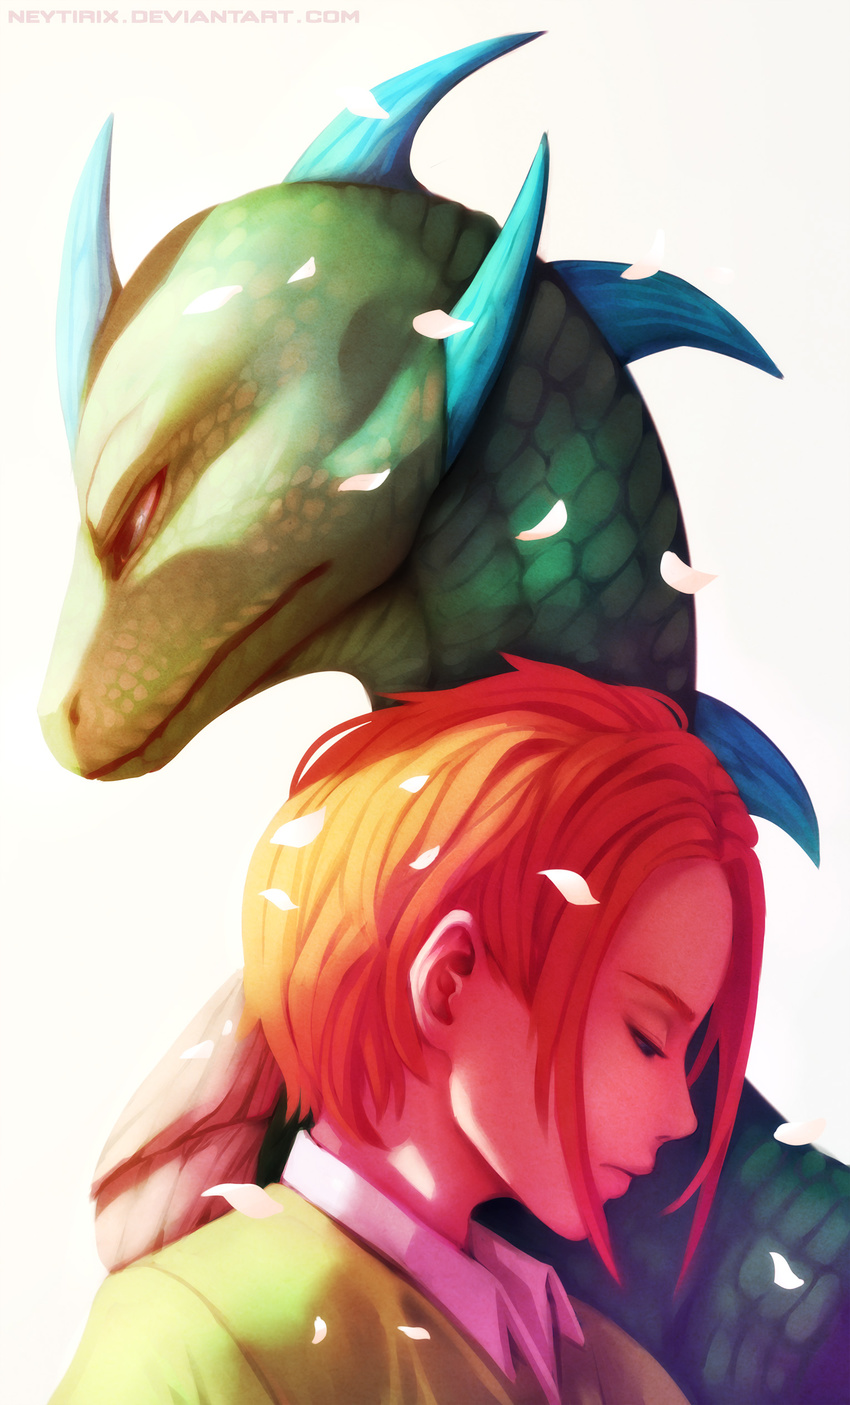 2017 digital_media_(artwork) duo green_scales hair human lizard mammal neytirix red_hair reptile scales scalie simple_background spines white_background